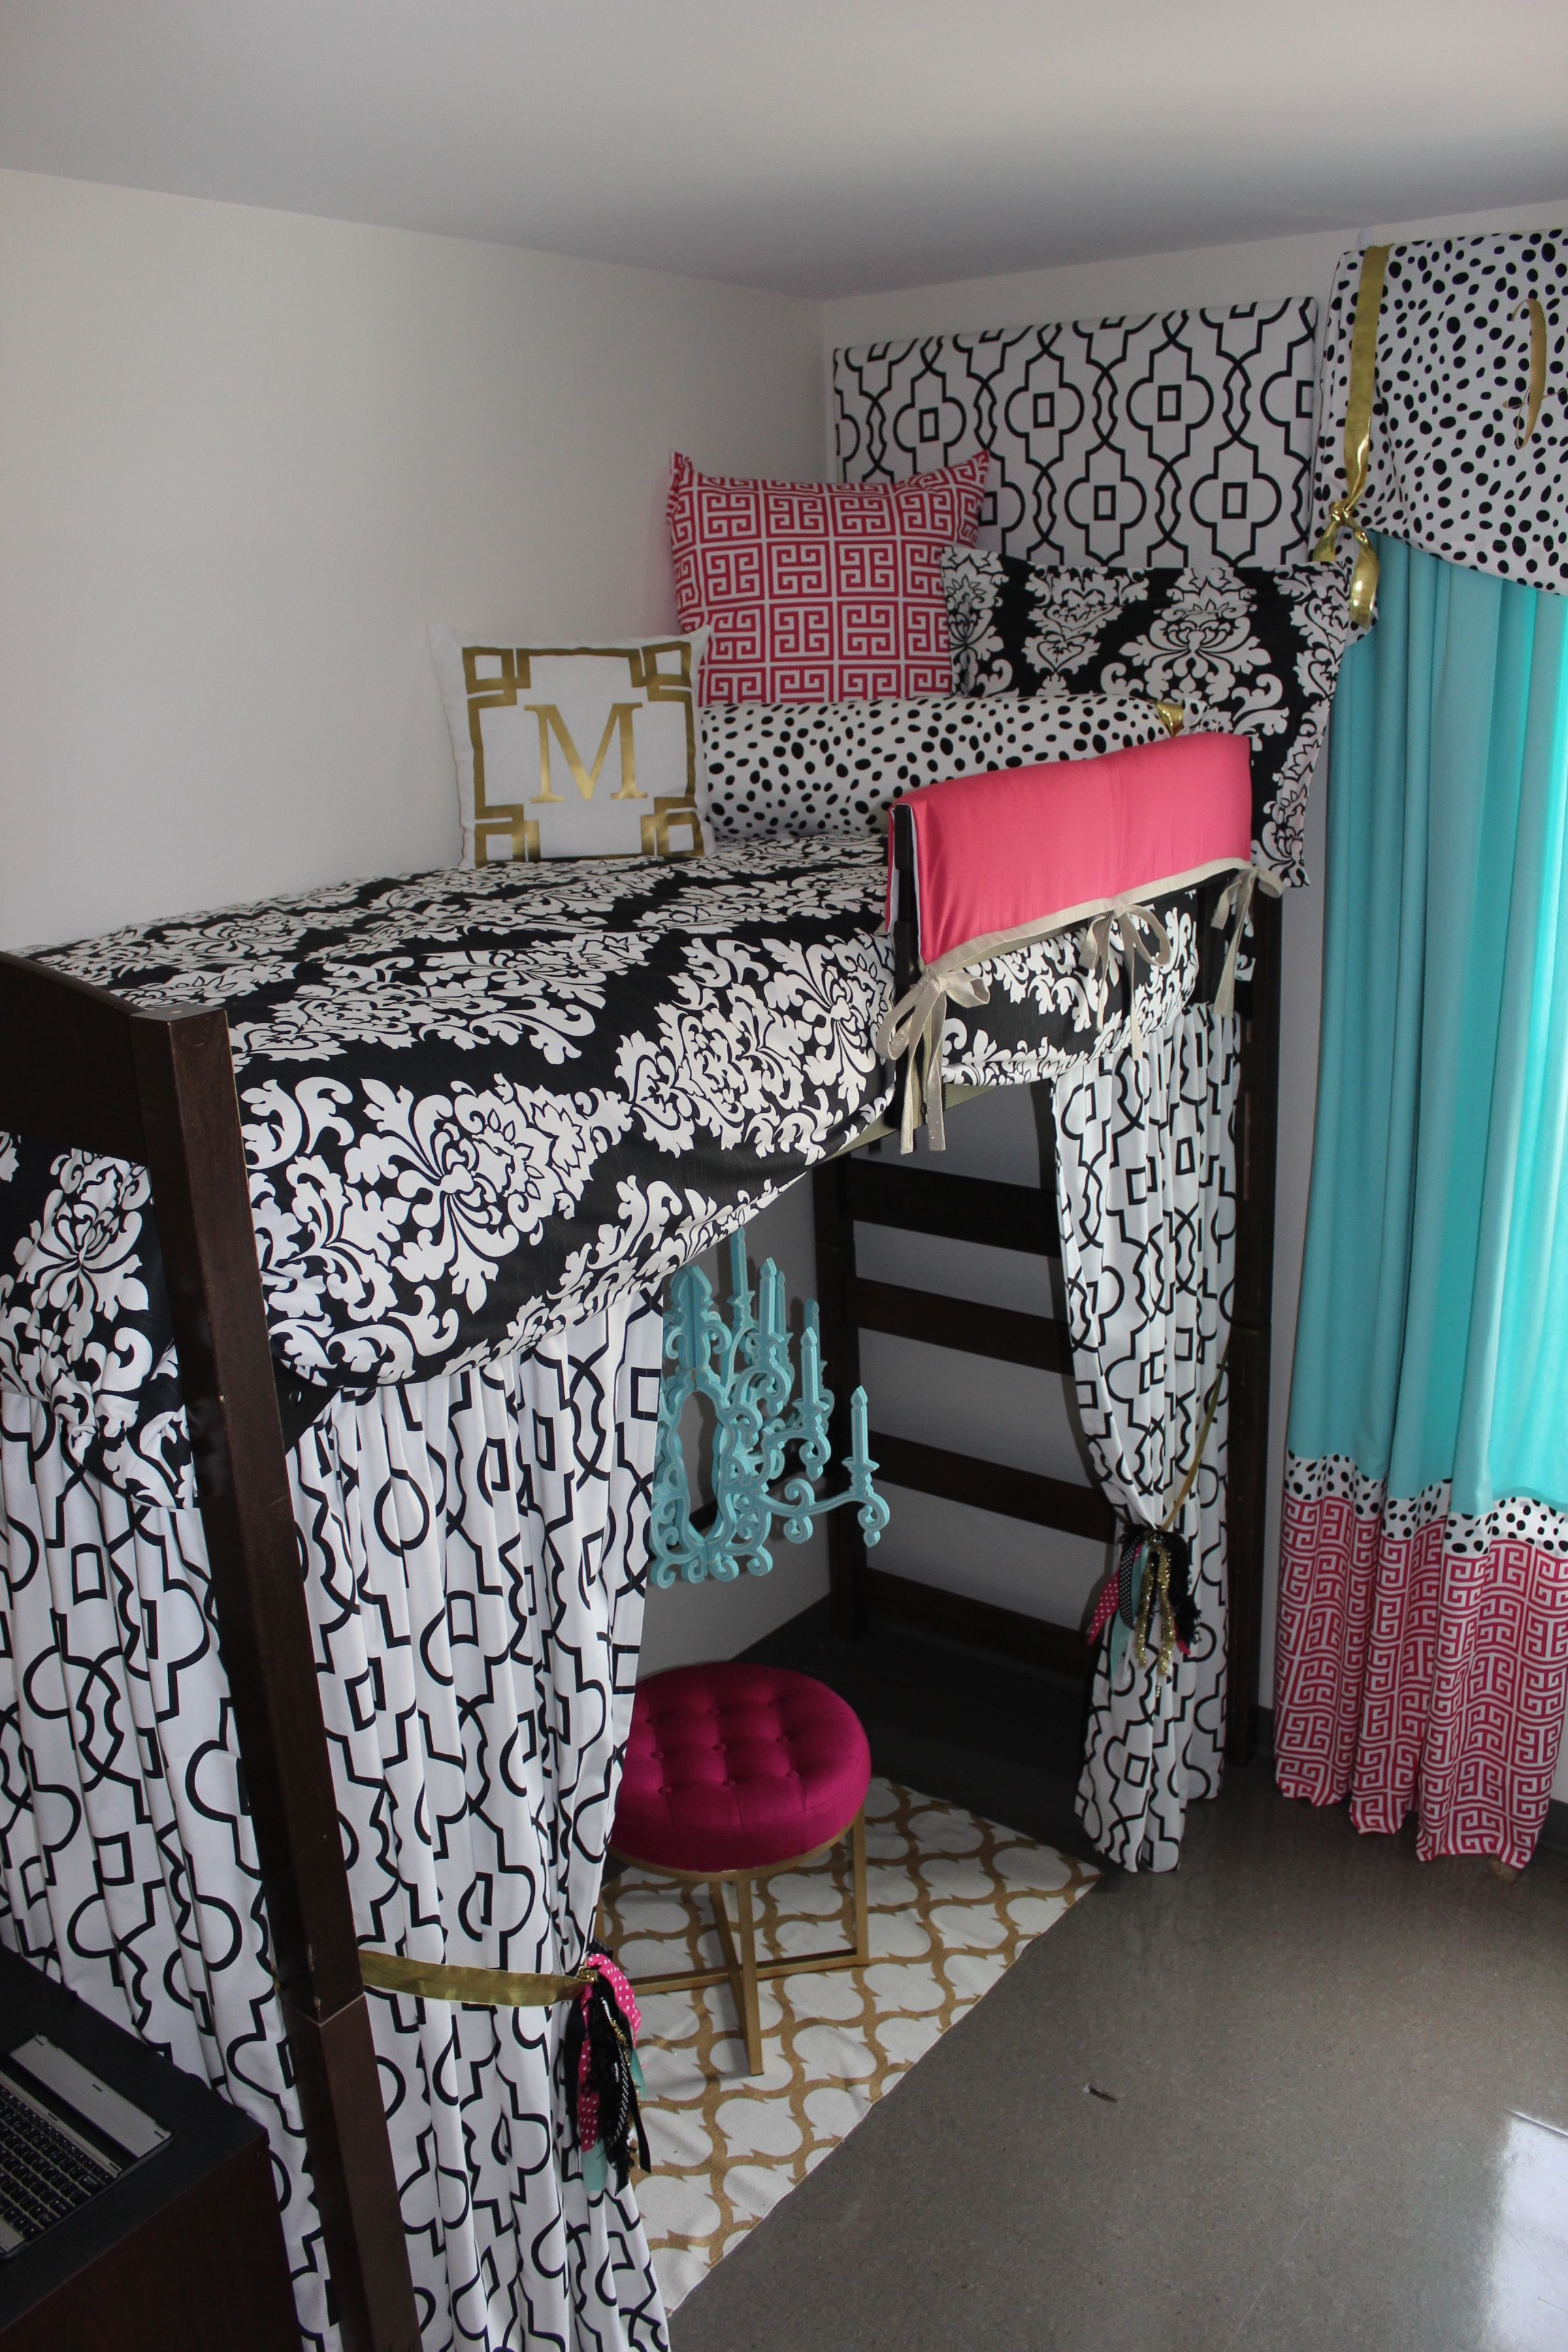 Dorm room ideas for girls two beds - Find This Pin And More On Dorm